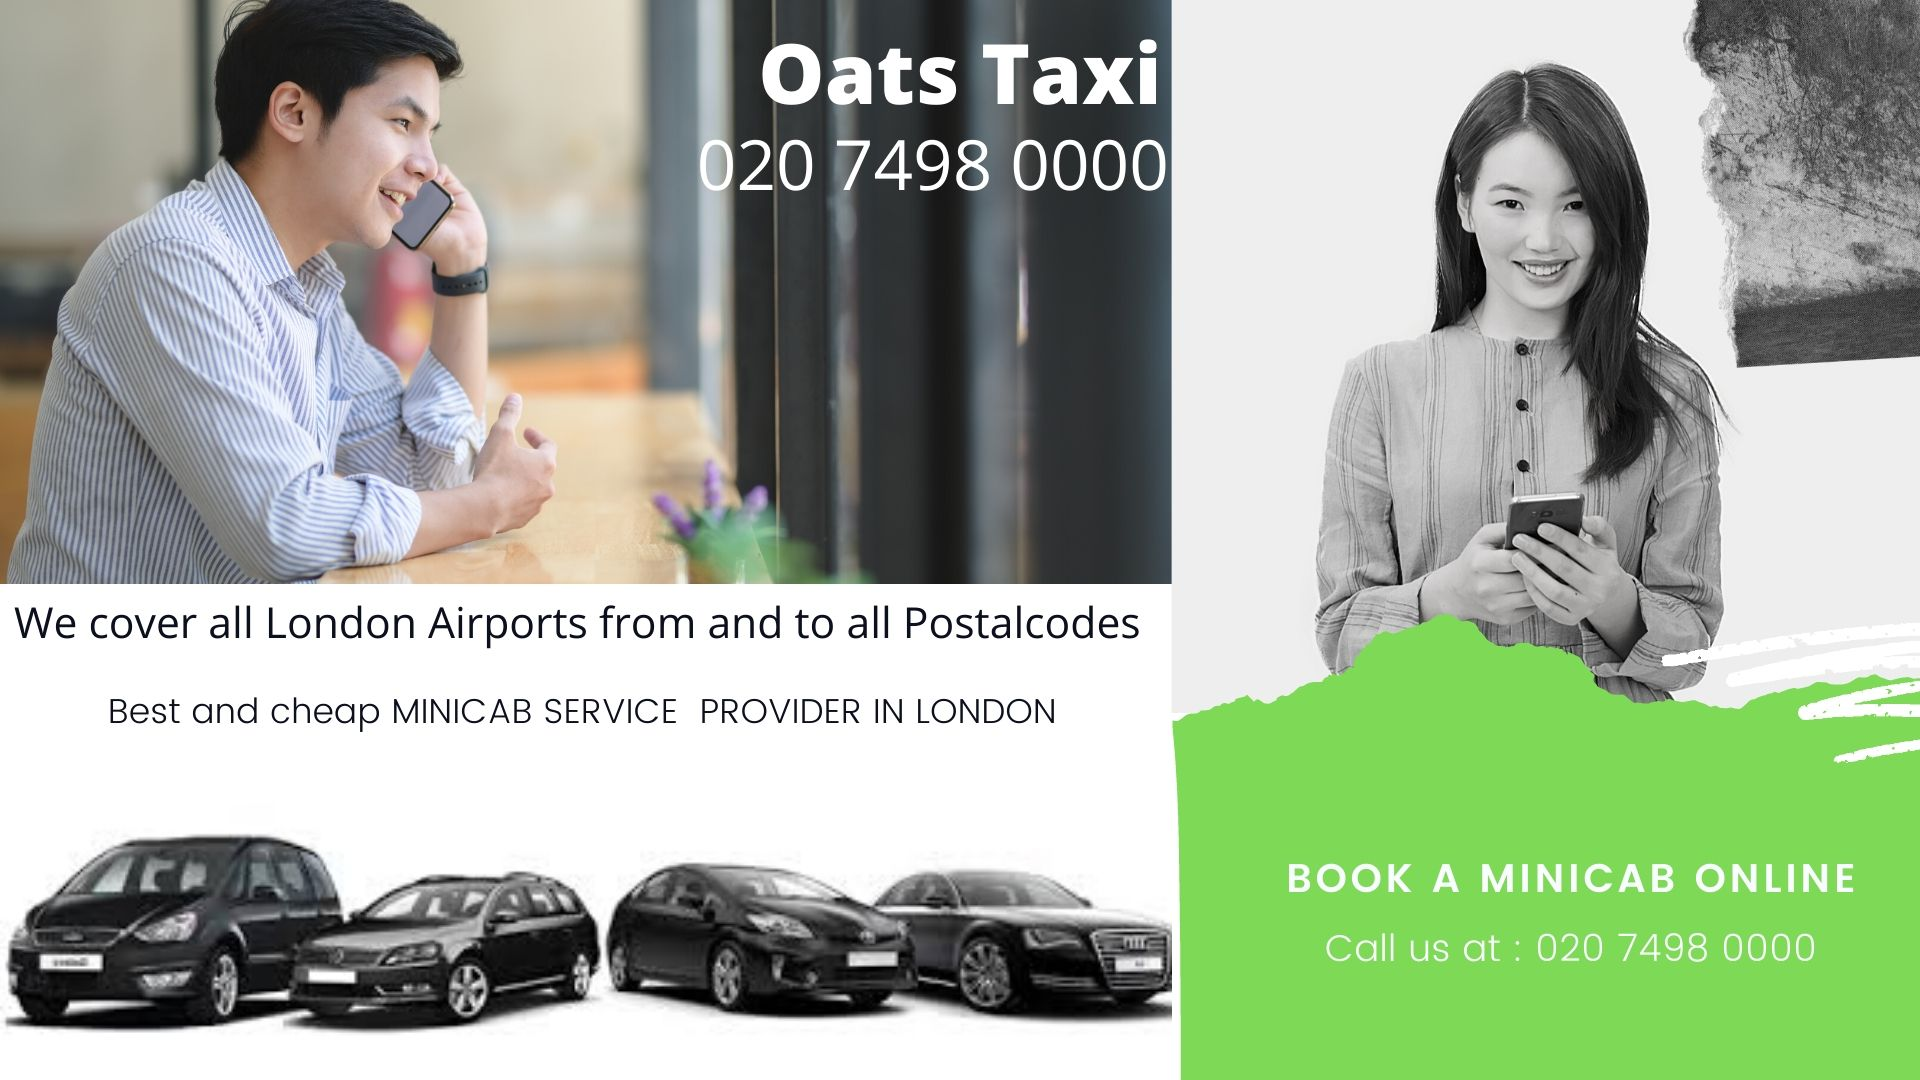 Minicab Office Near WEBB'S ROAD, Battersea SW11, Minicab From Battersea SW11 To Gatwick Airport